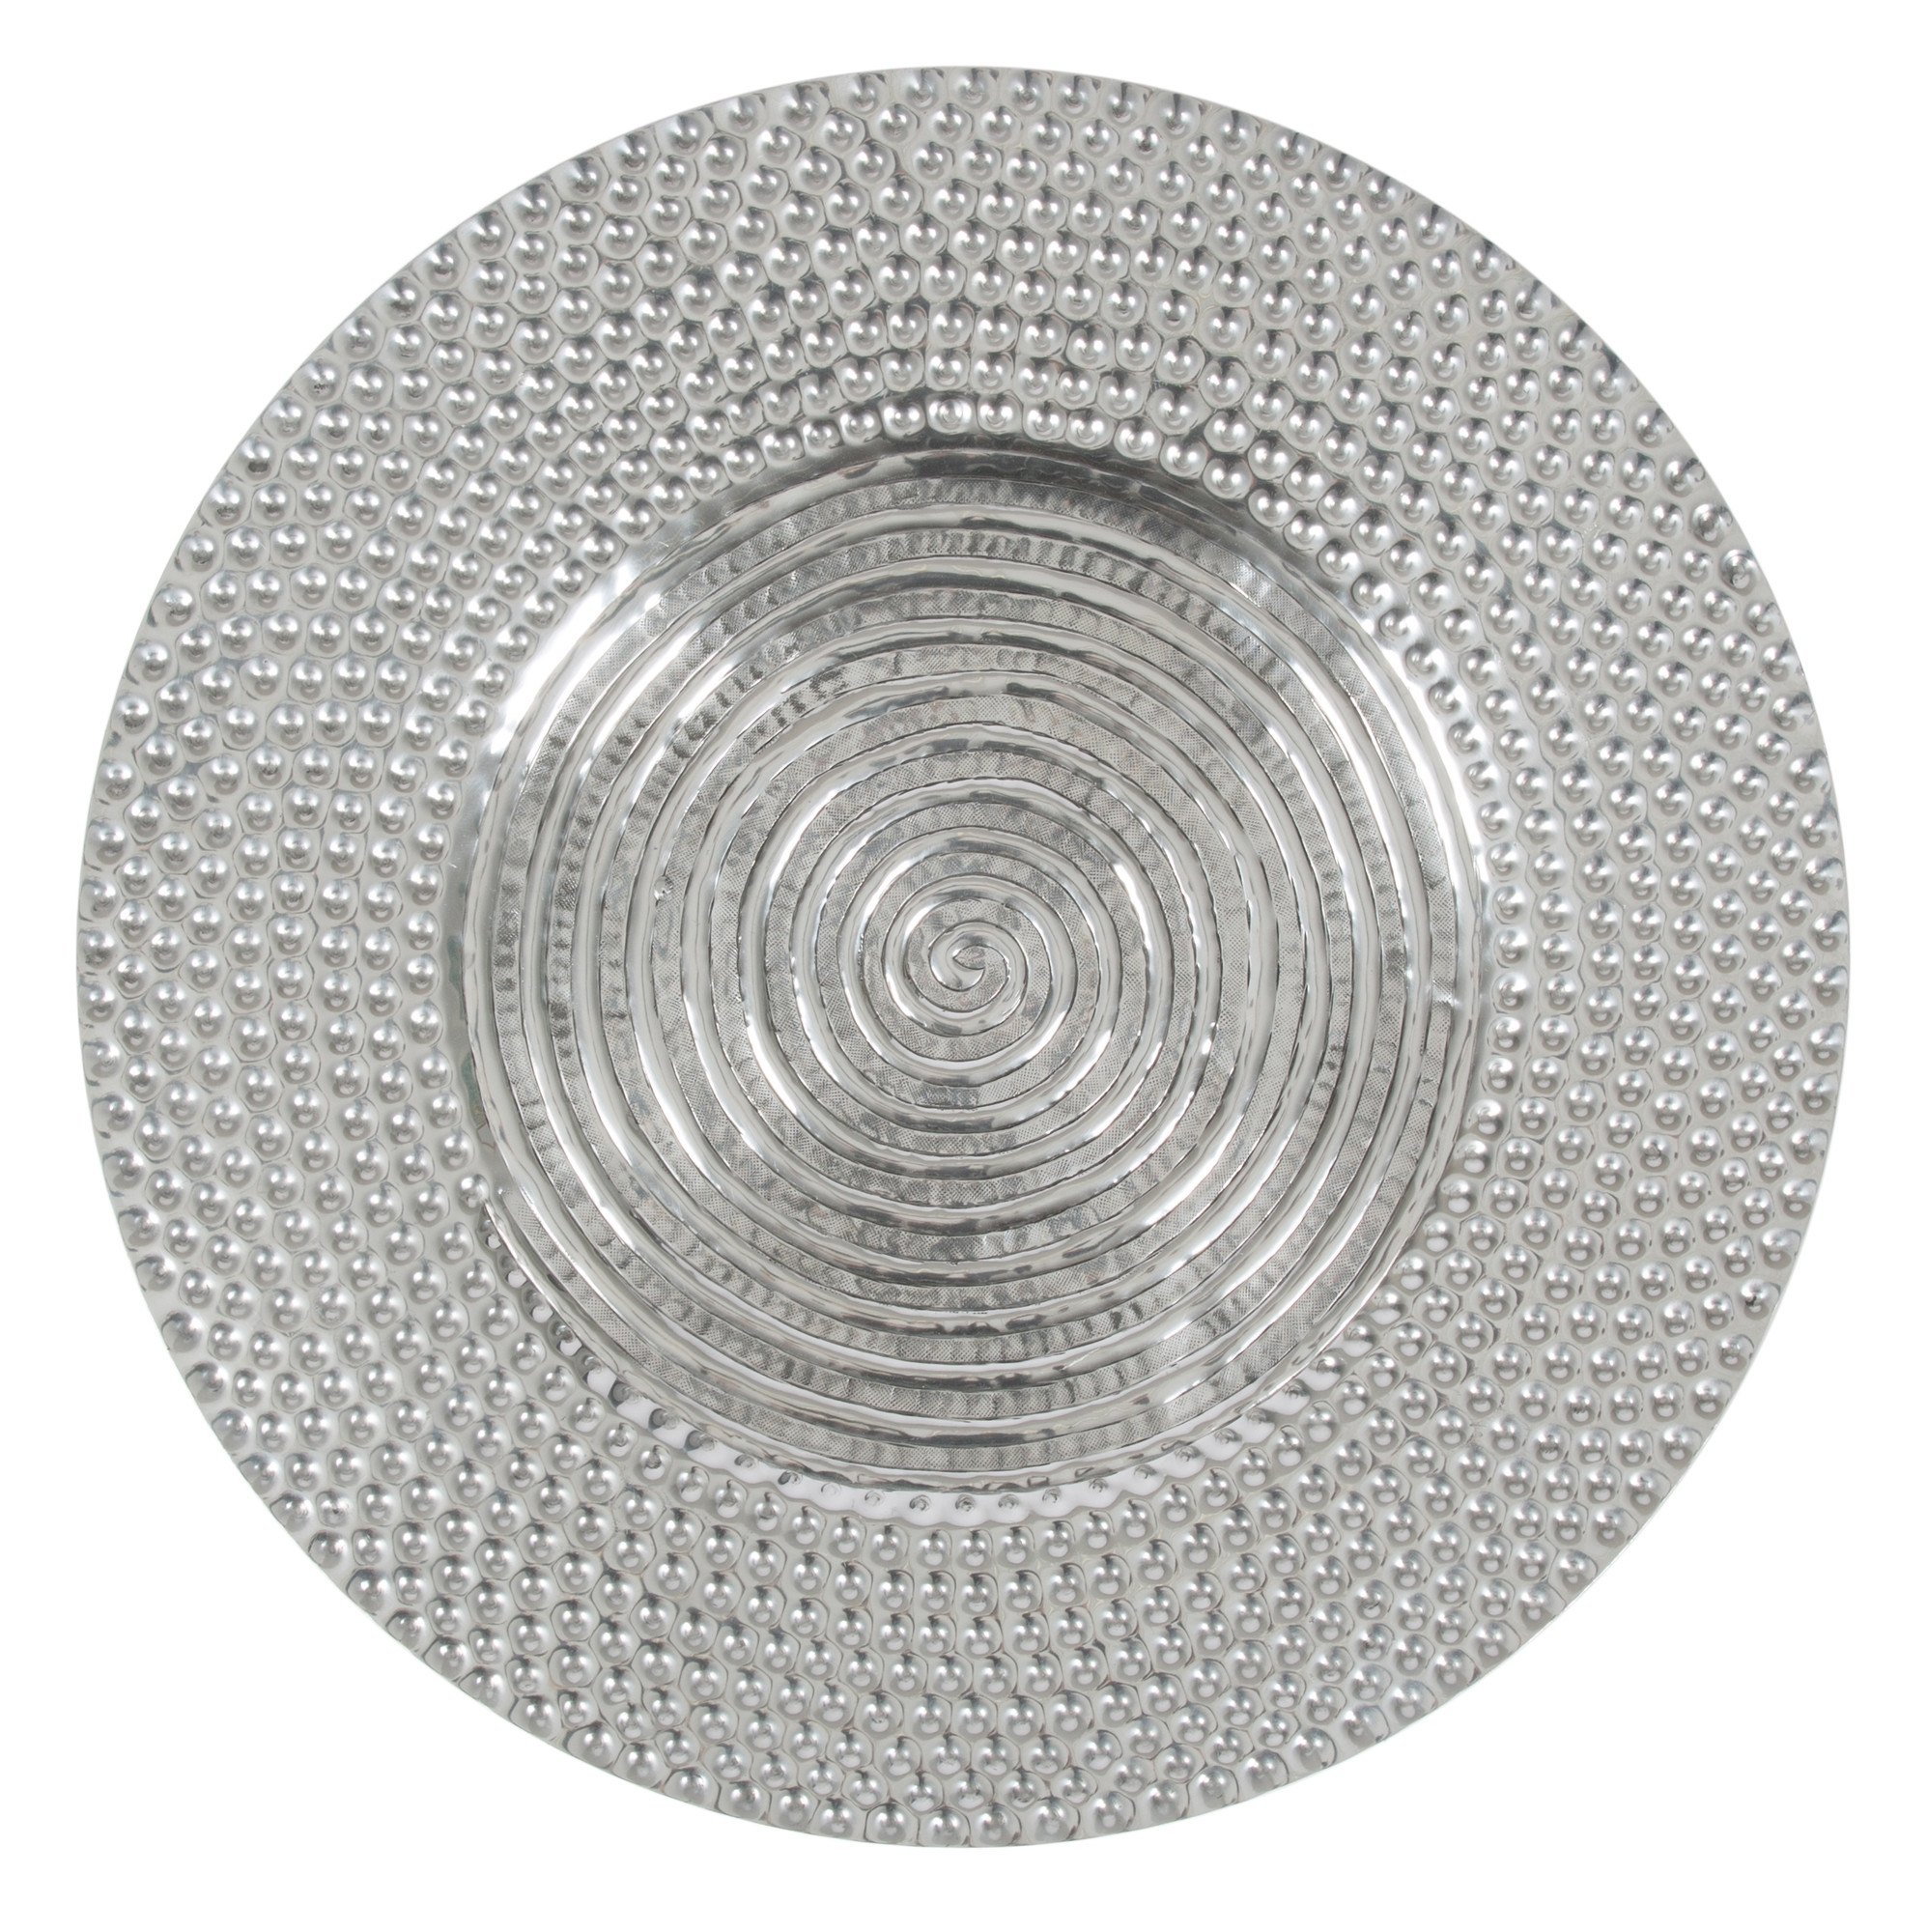 Aluminium Antique Round Wall Art | Temple & Webster Intended For Most Popular Round Wall Art (View 1 of 20)